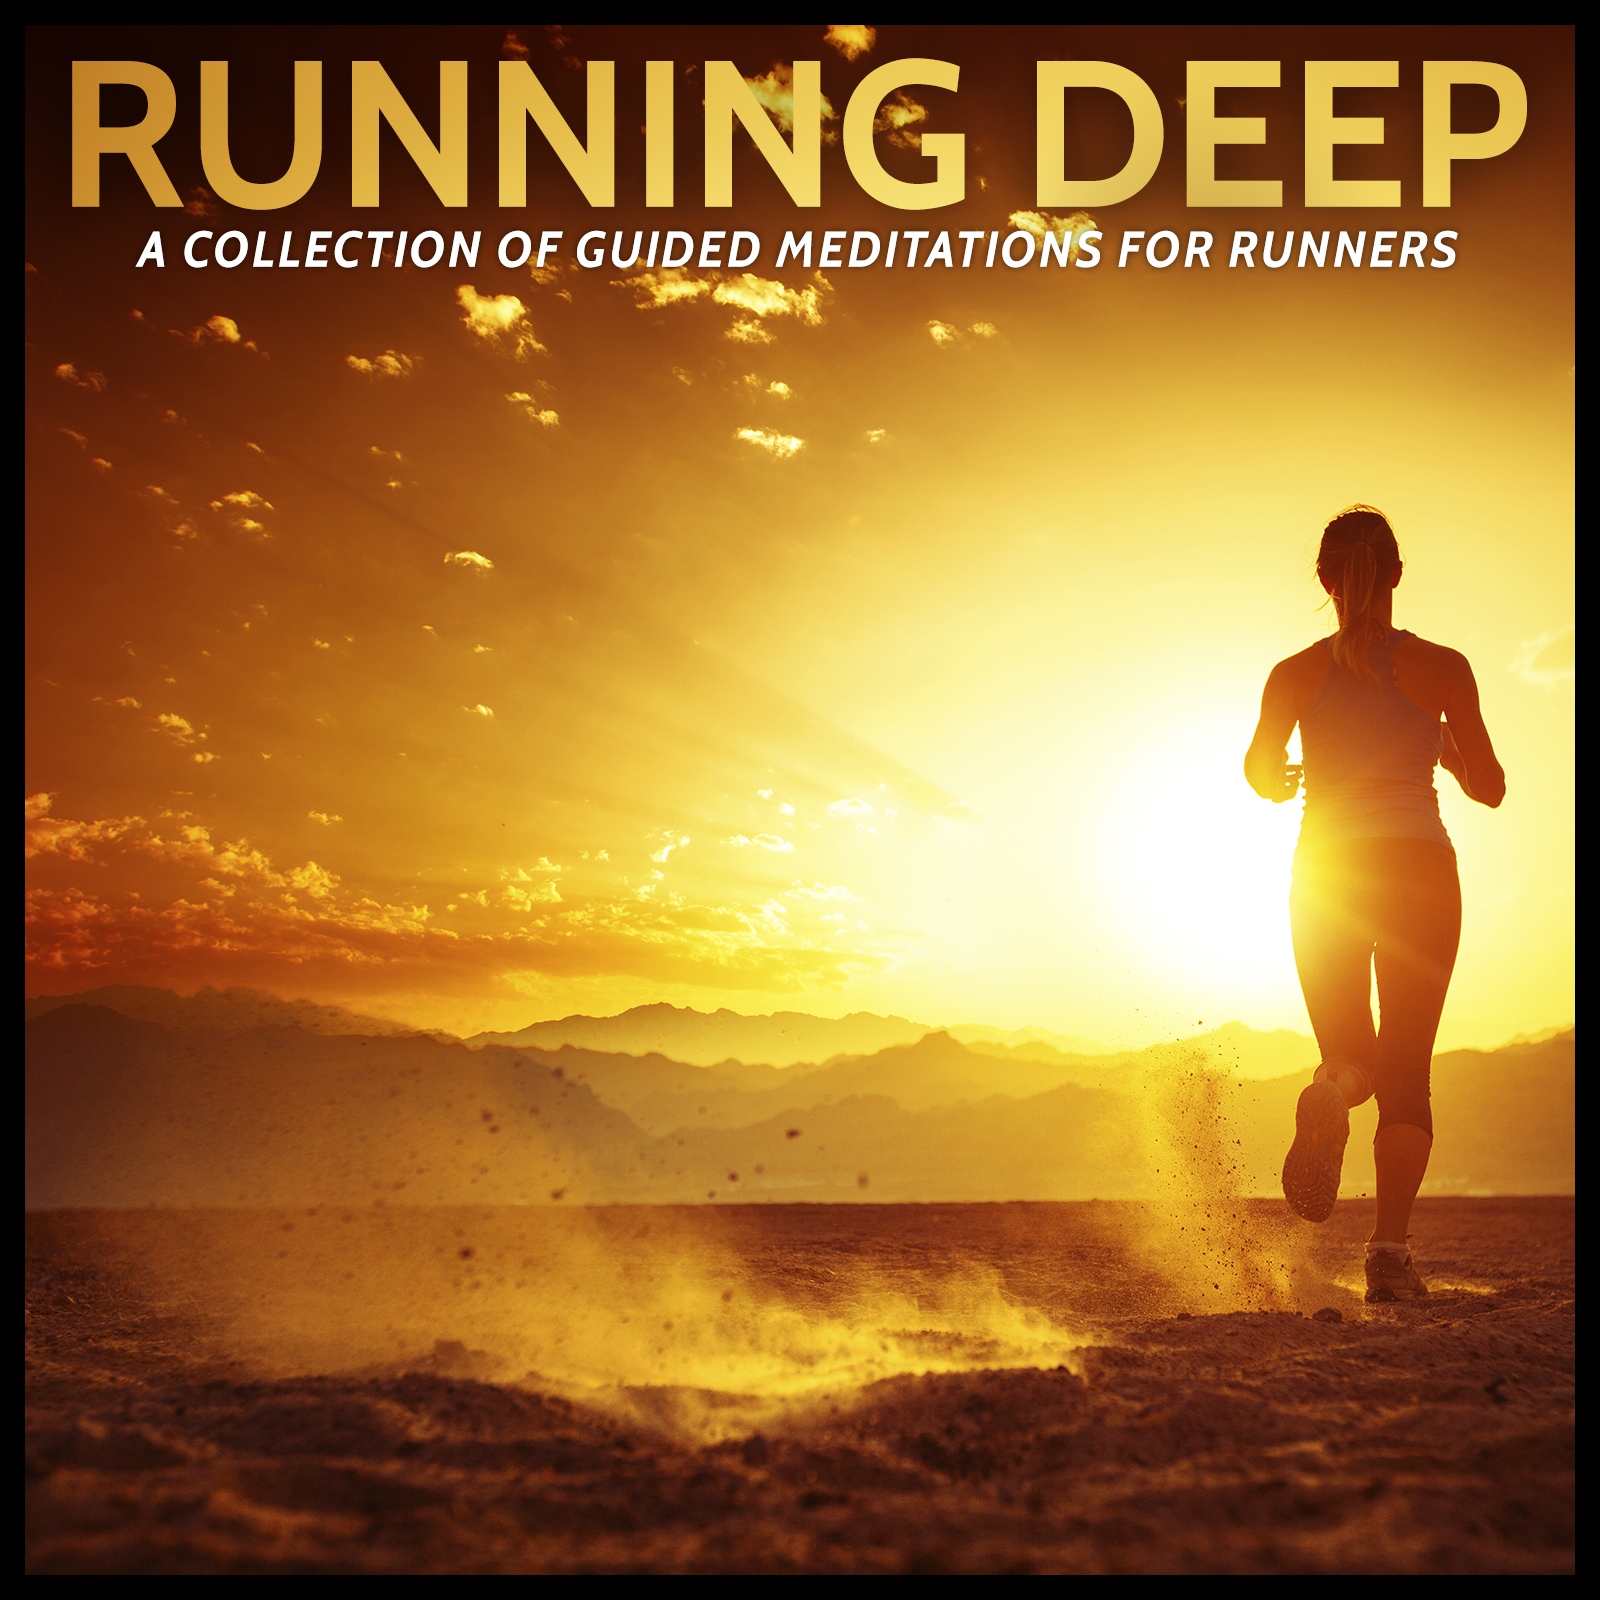 Running Deep -- a collection of guided meditations for runners